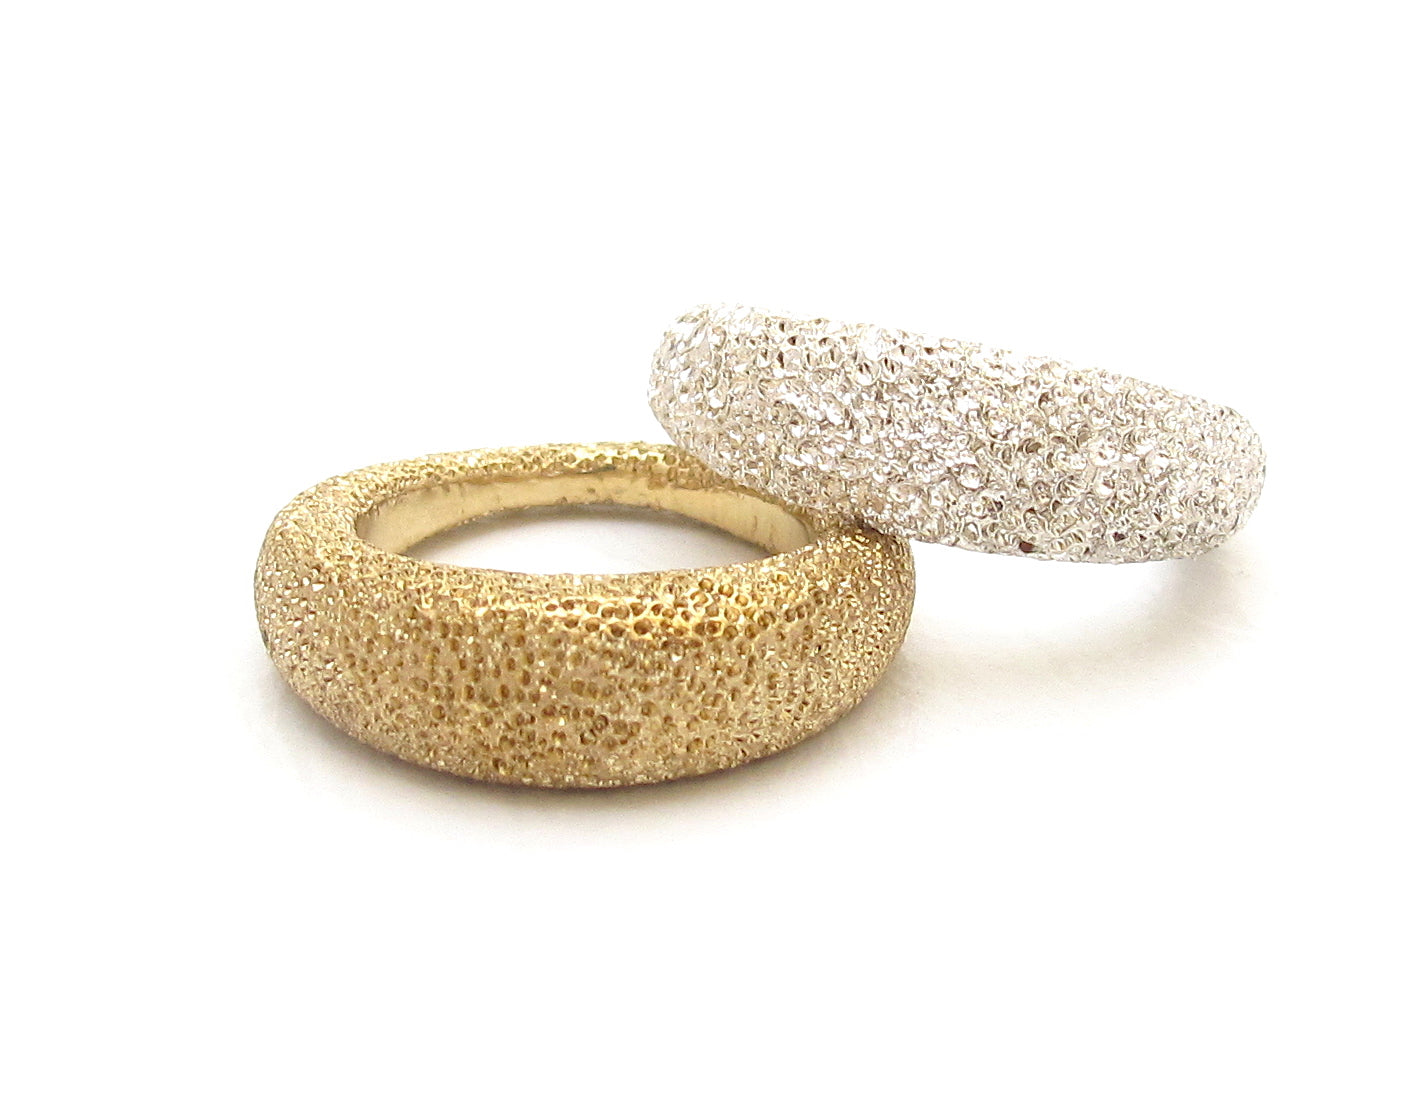 Cay ring, bronze + silver